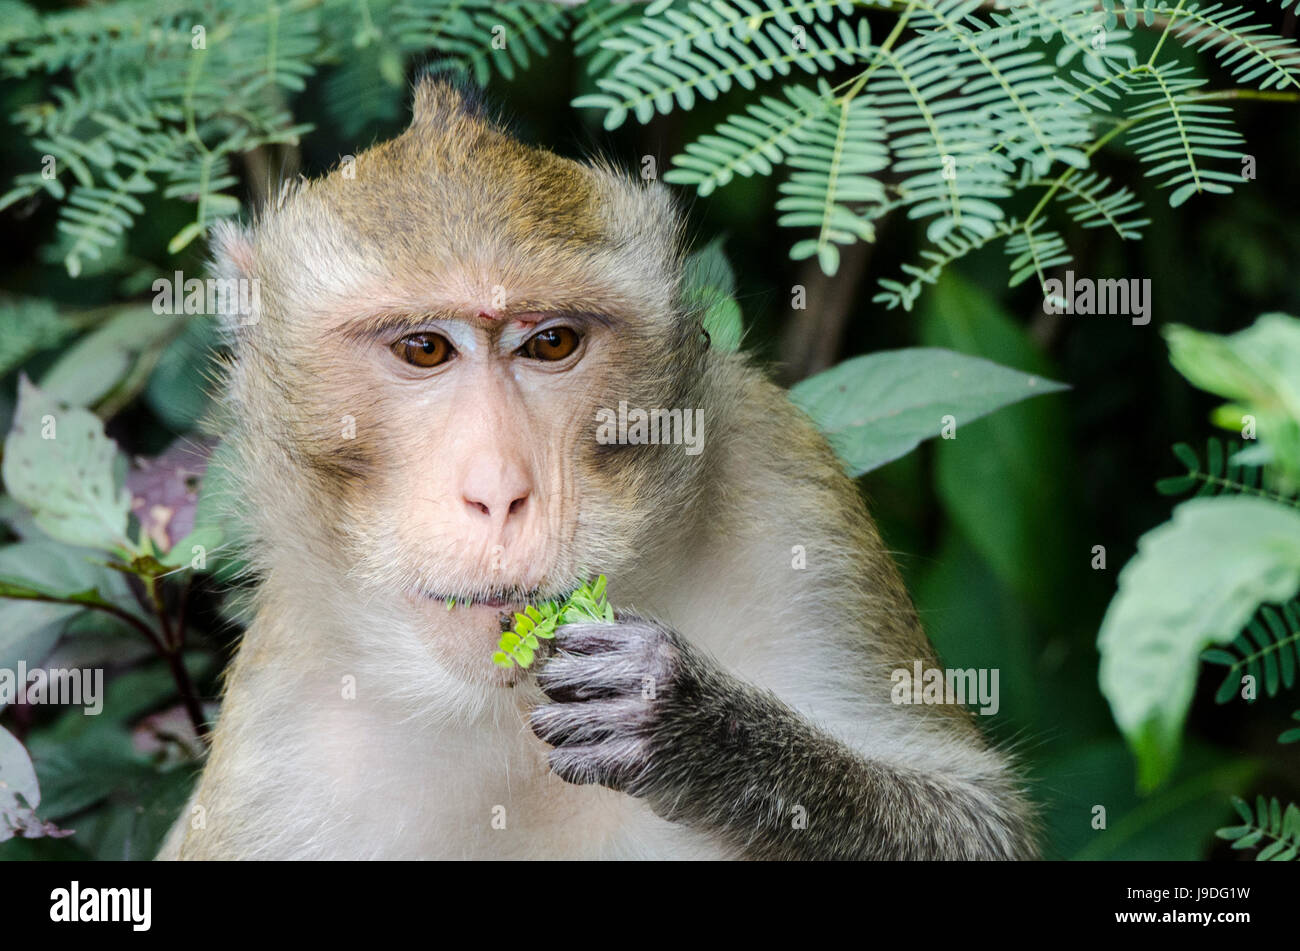 A lone adult crab-eating macaque (Macaca fascicularis) or long-tailed macaque feeding in the local park near villages - Stock Image